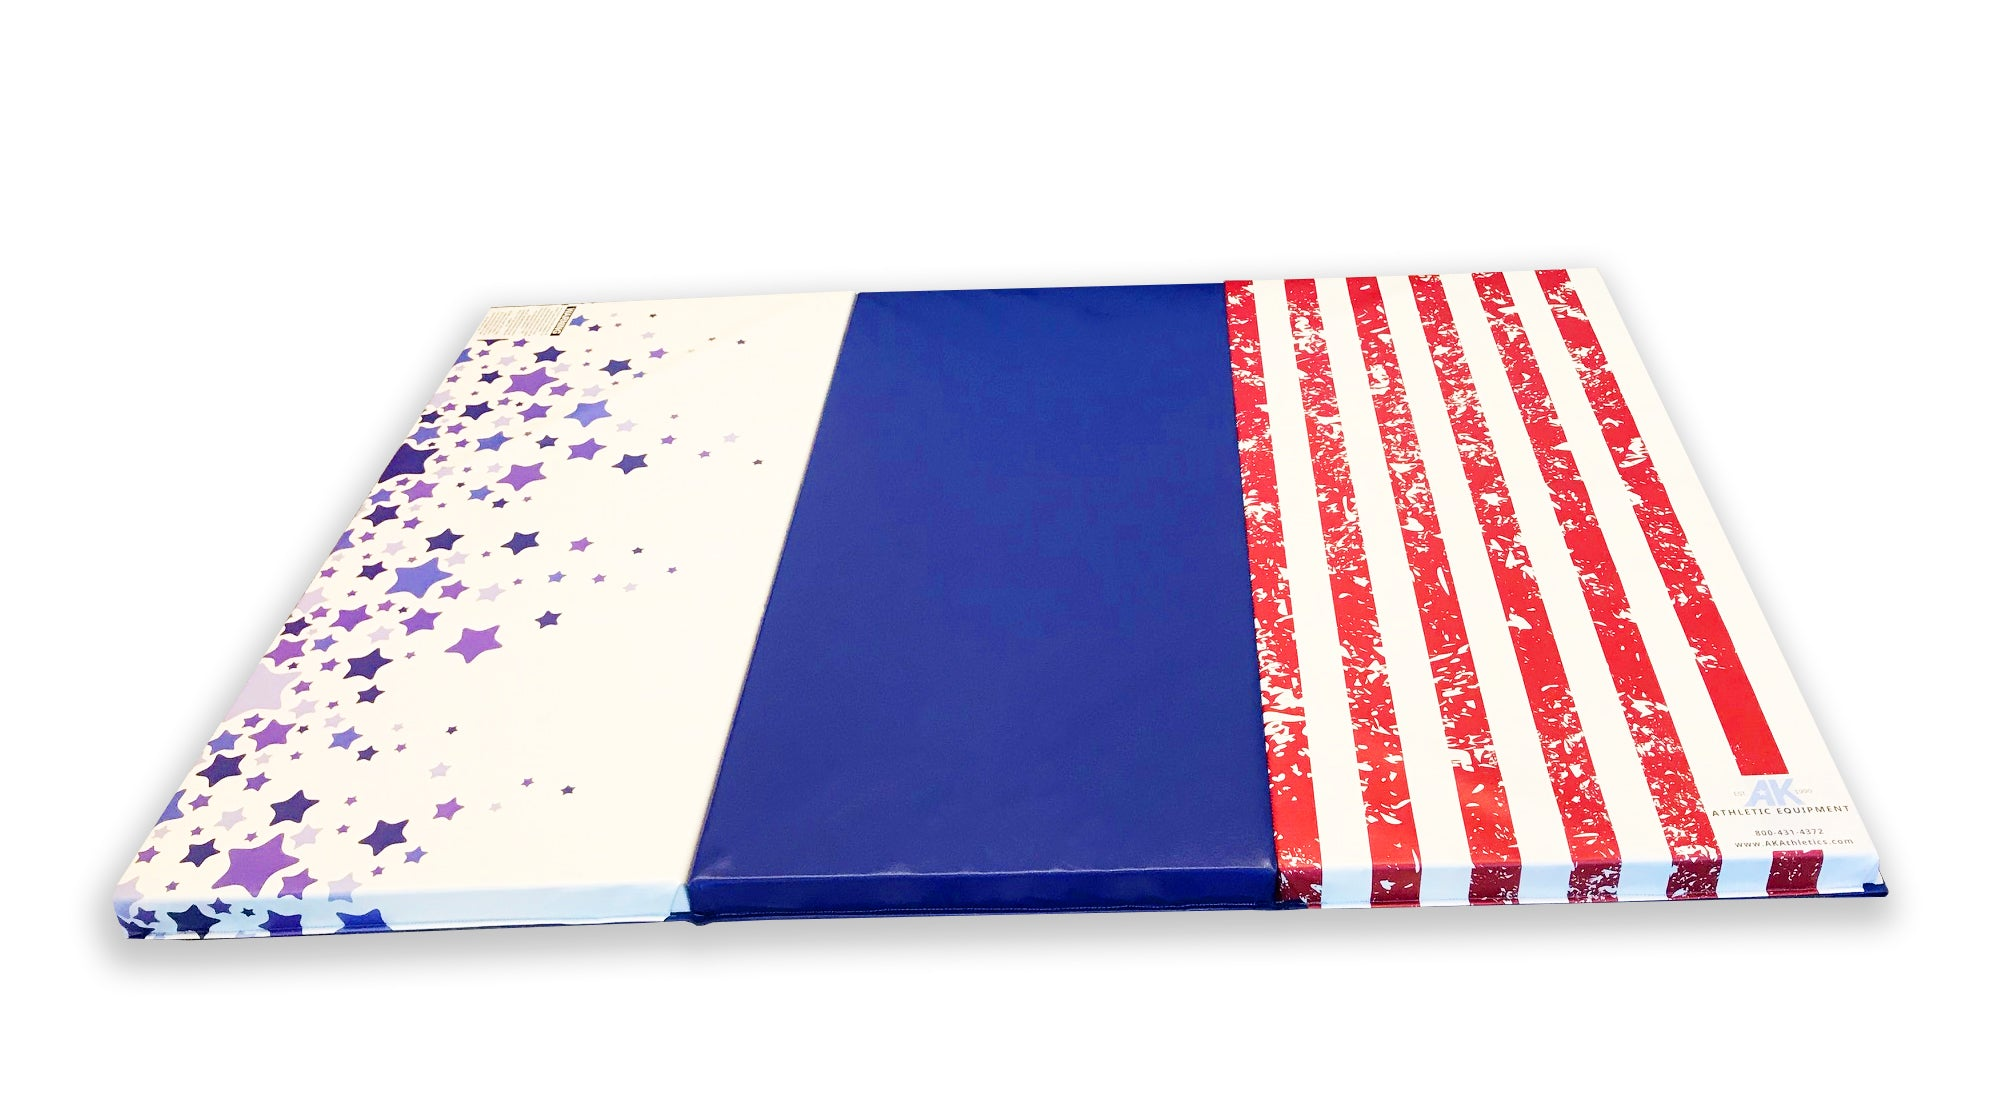 "CLEARANCE LOWEST PRICE OF THE YEAR Red White and Blue 4' x 6' x 2"" Intermediate Level Folding Gymnastics Mat"